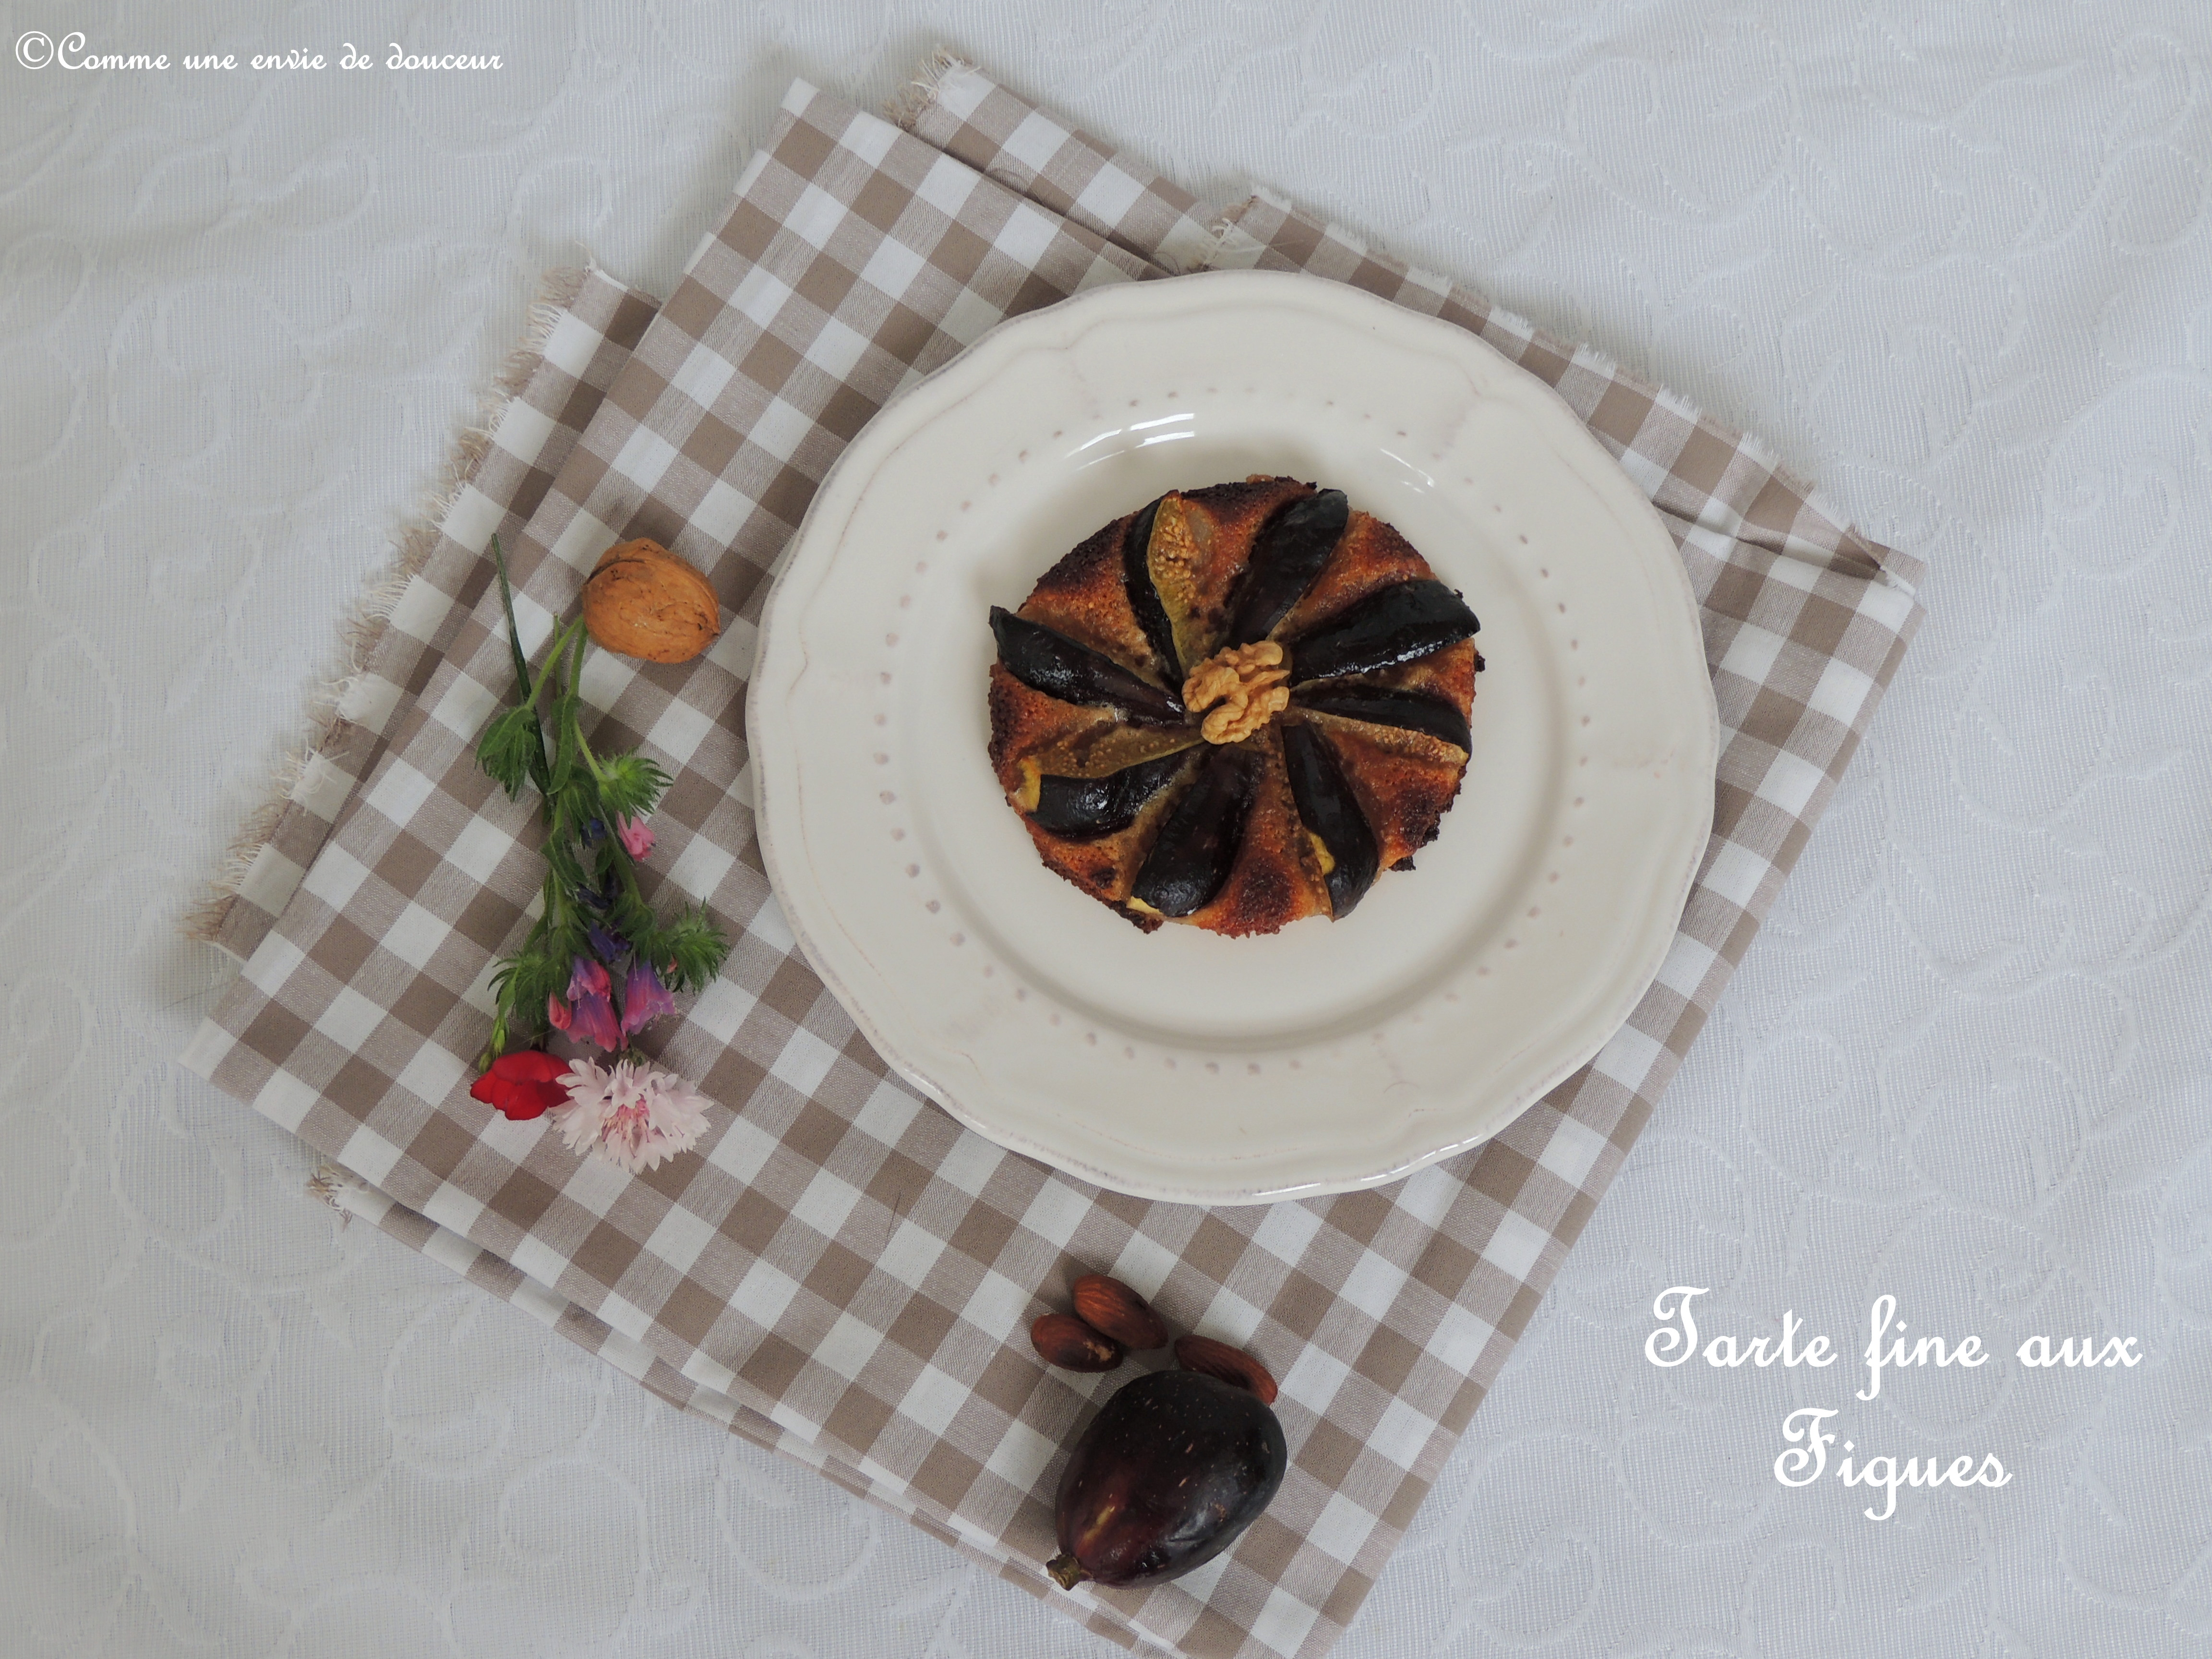 Tartes fines aux figues – Thin fig tartlets